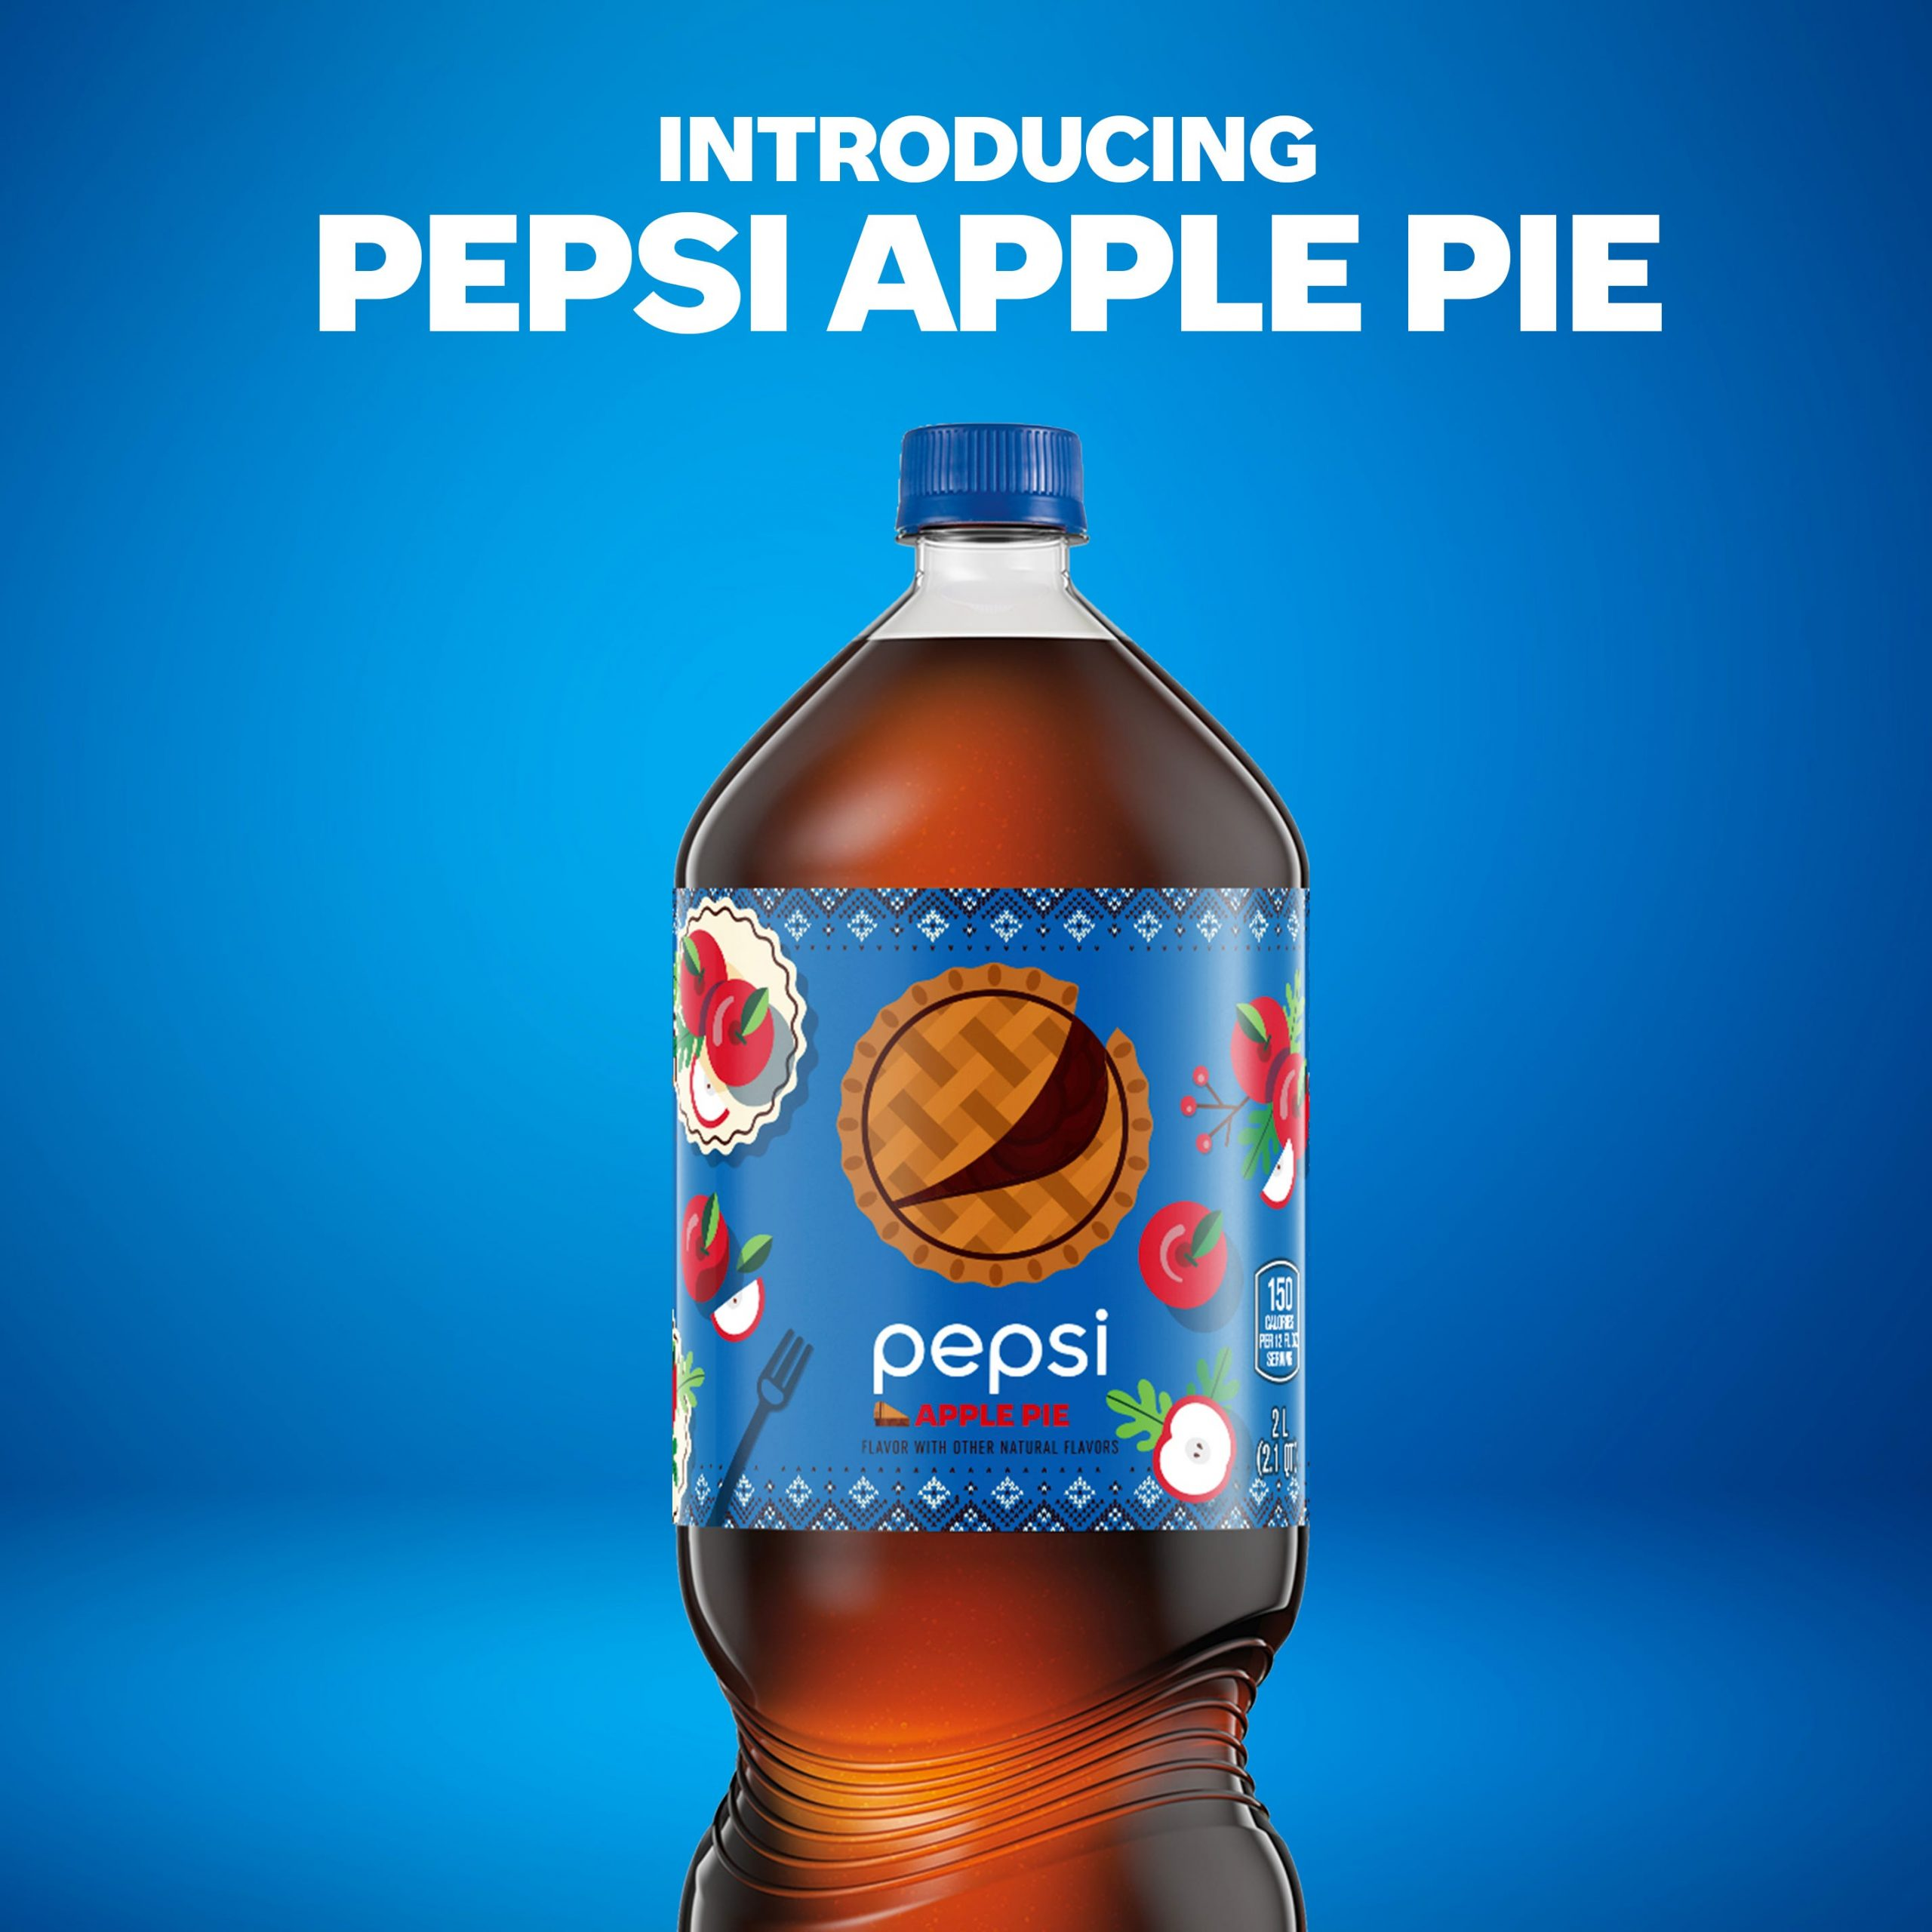 An apple pie in a bottle: Pepsi launches new soda with cinnamon and apple flavors